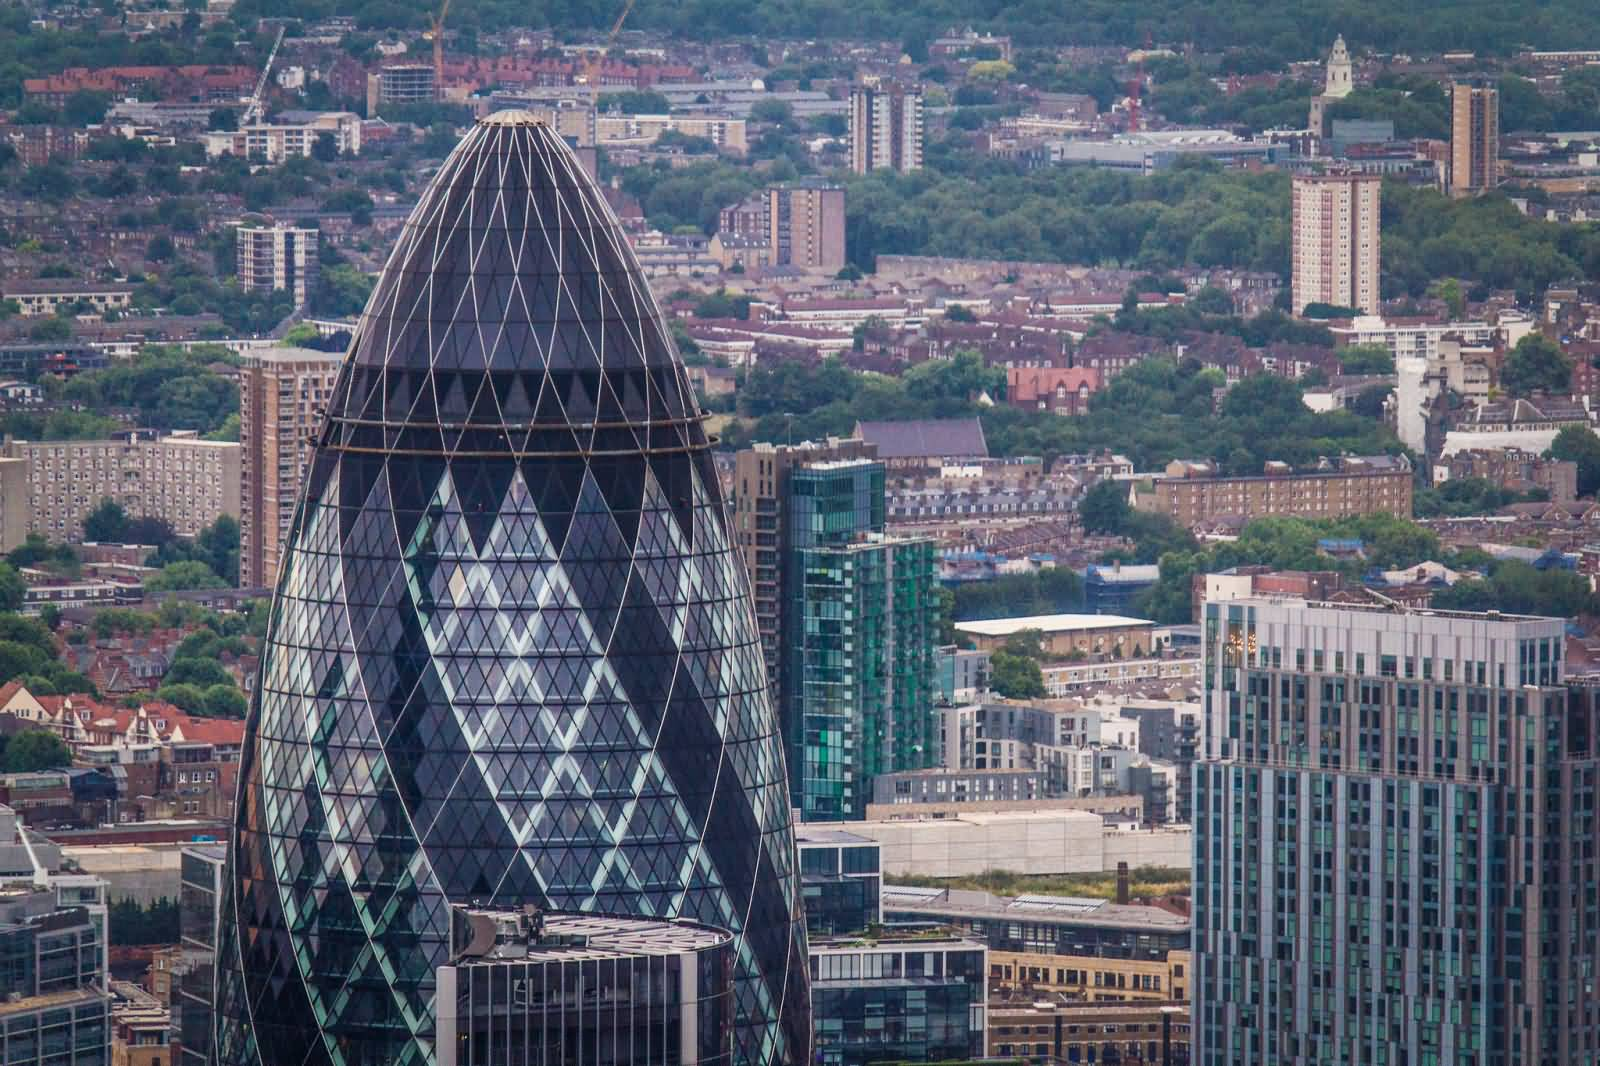 beautiful view of the gherkin building in london